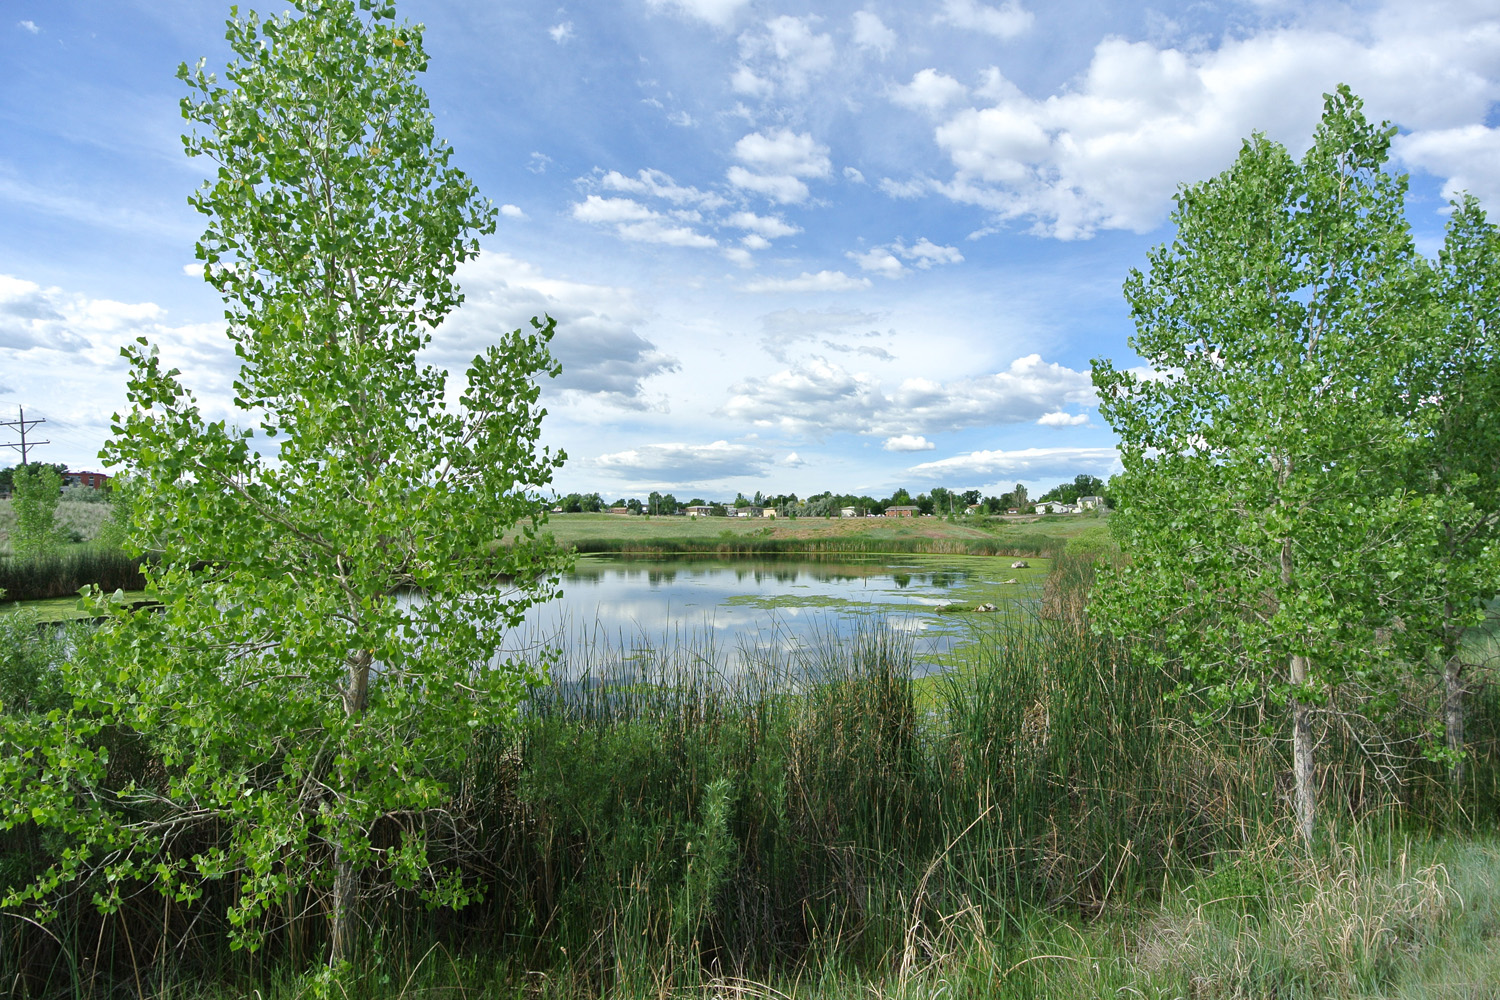 Wernimont Ponds Wetland Creation and Ecological Restoration